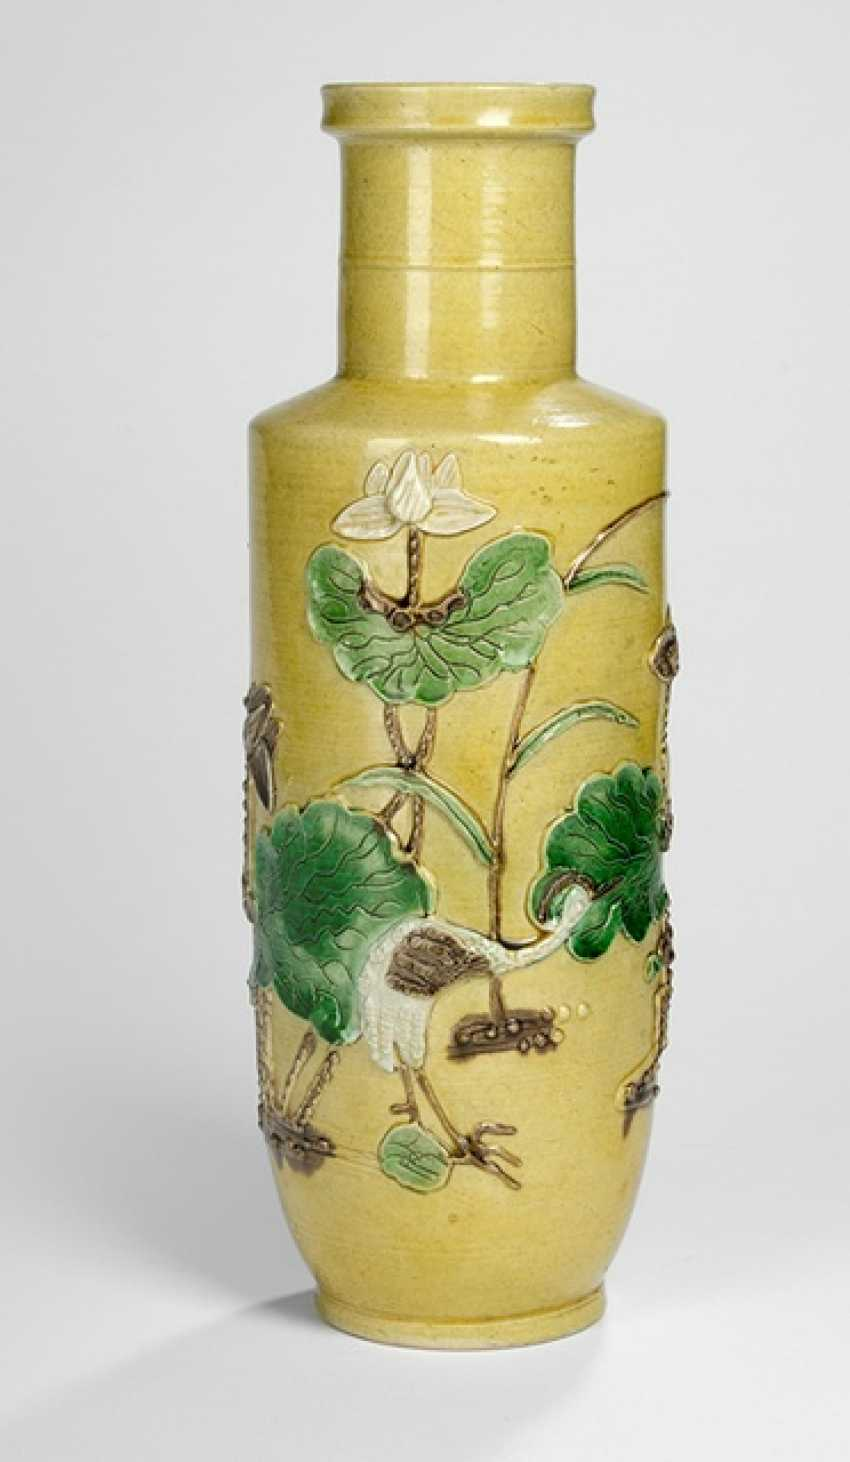 Vase with relief decoration of Lotus and herons on a yellow Fond of Biscuit-porcelain - photo 1